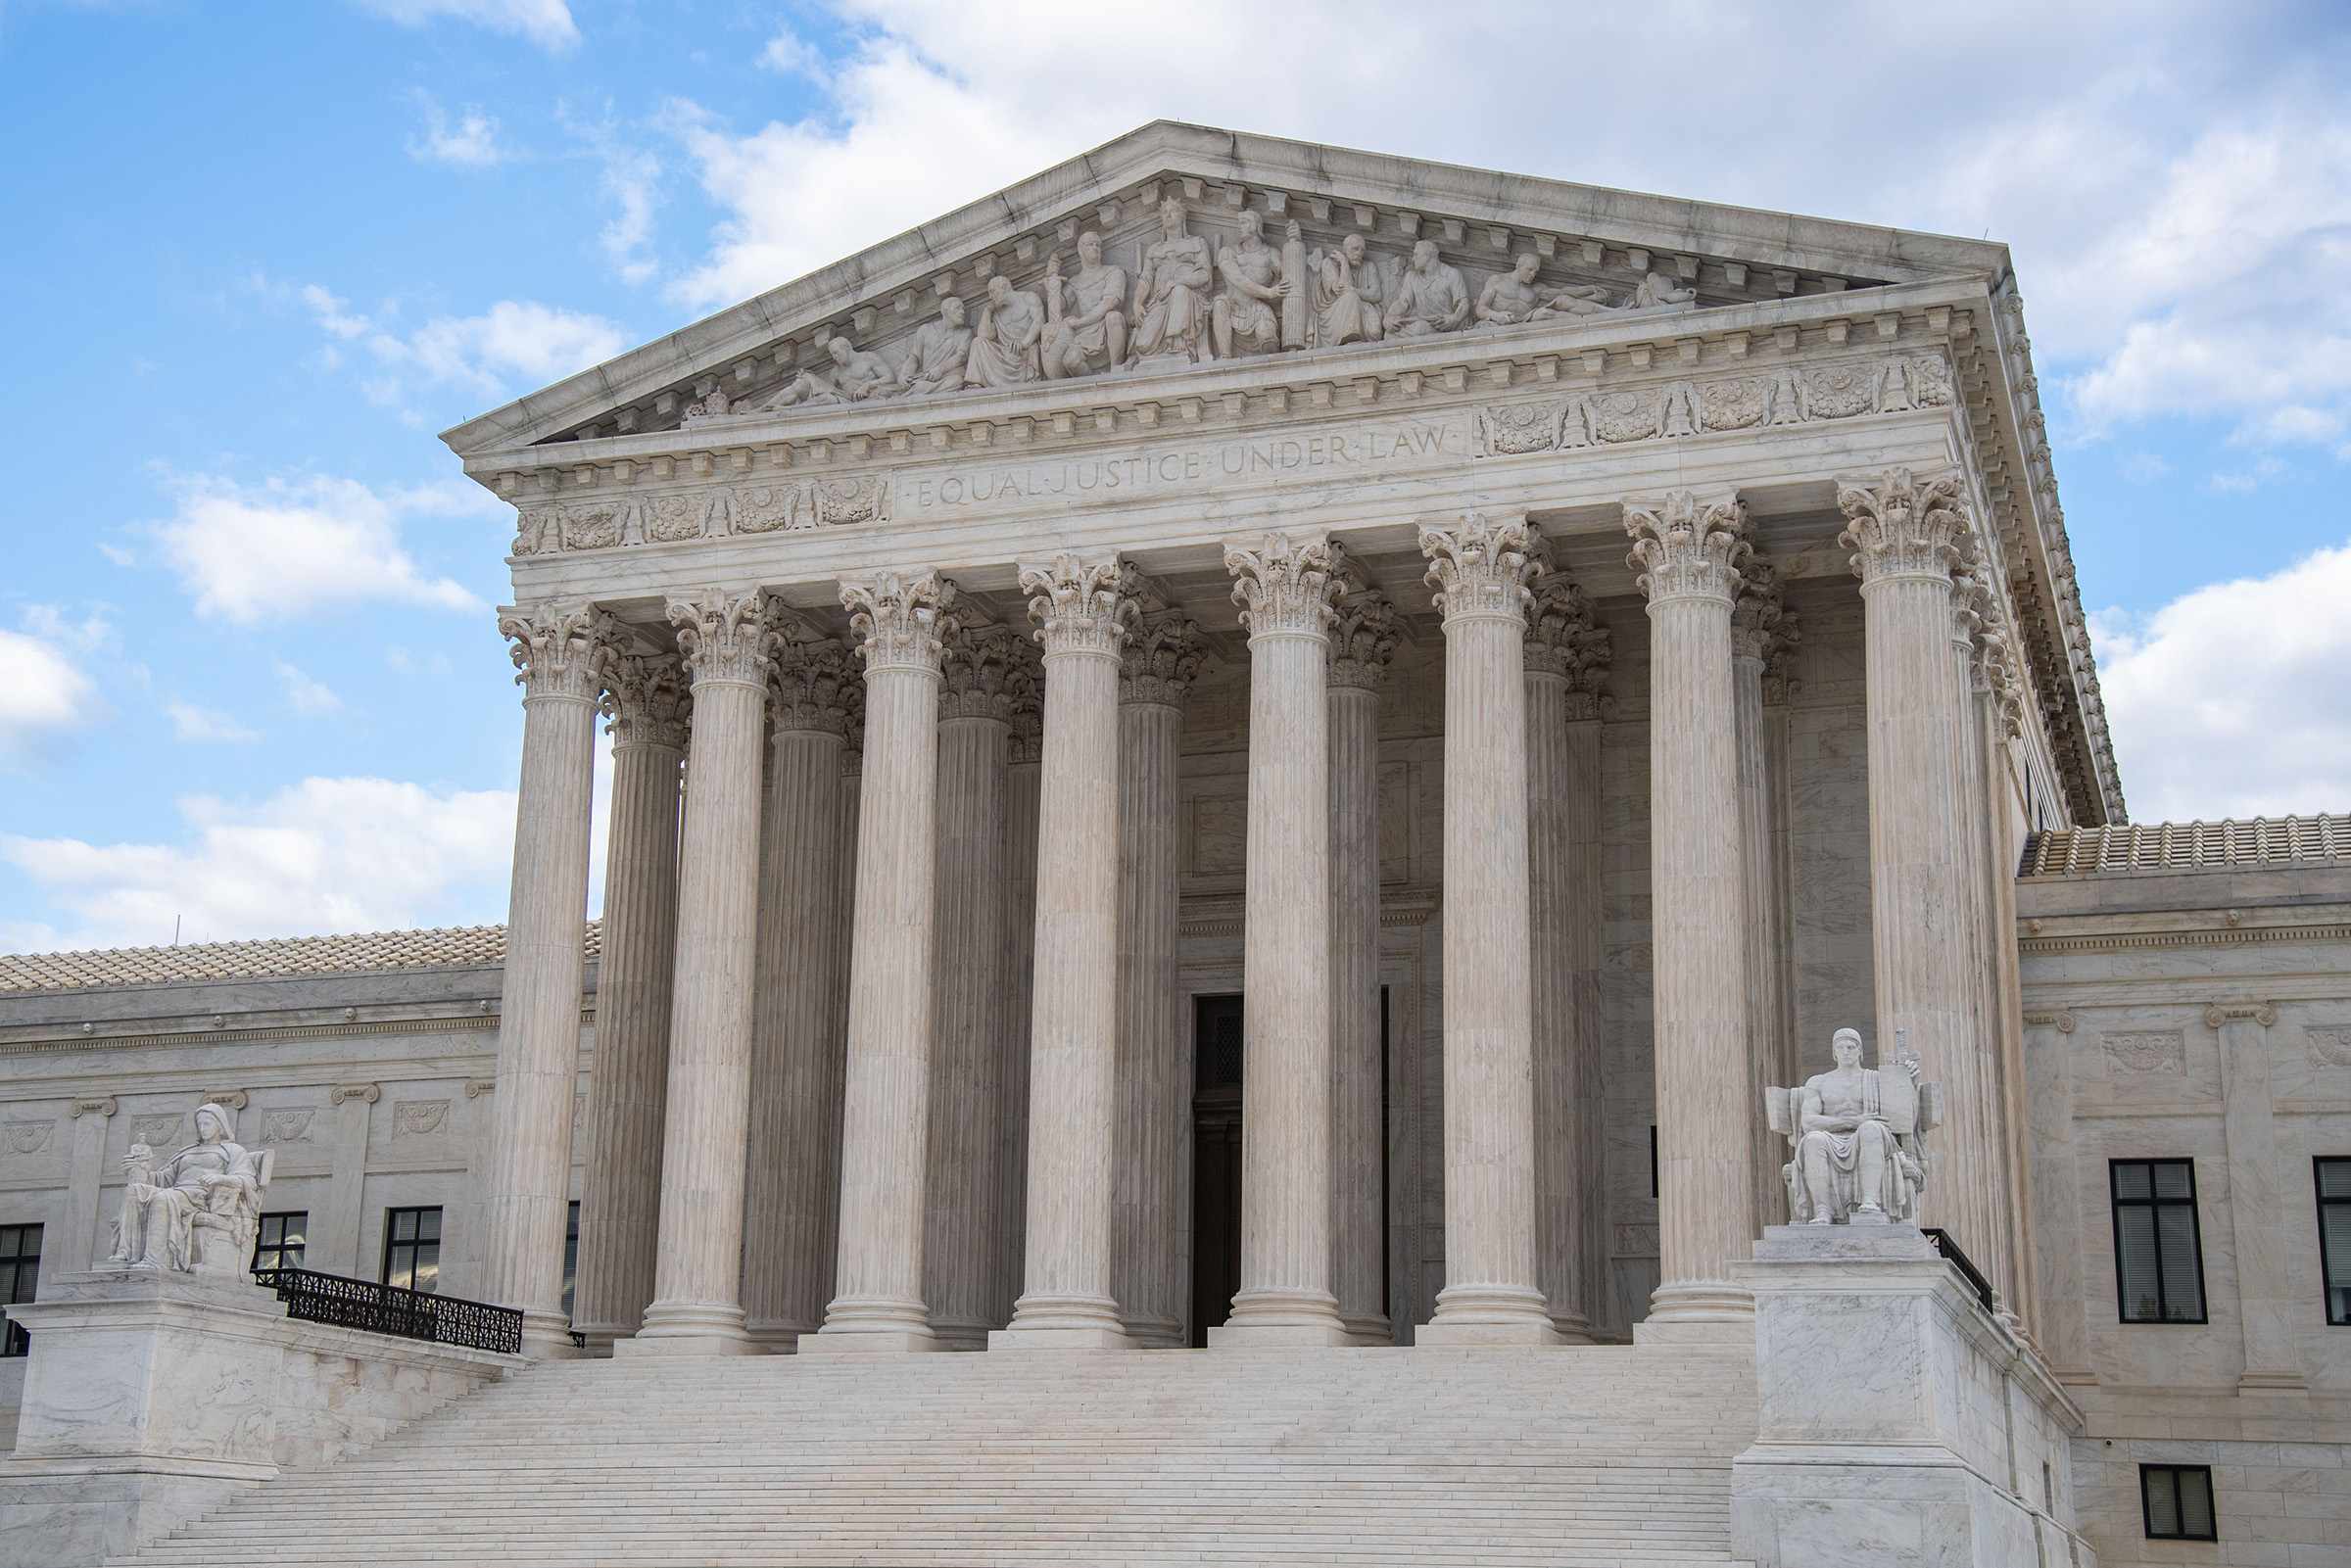 The Supreme Court in Washington, DC on July 11, 2020.